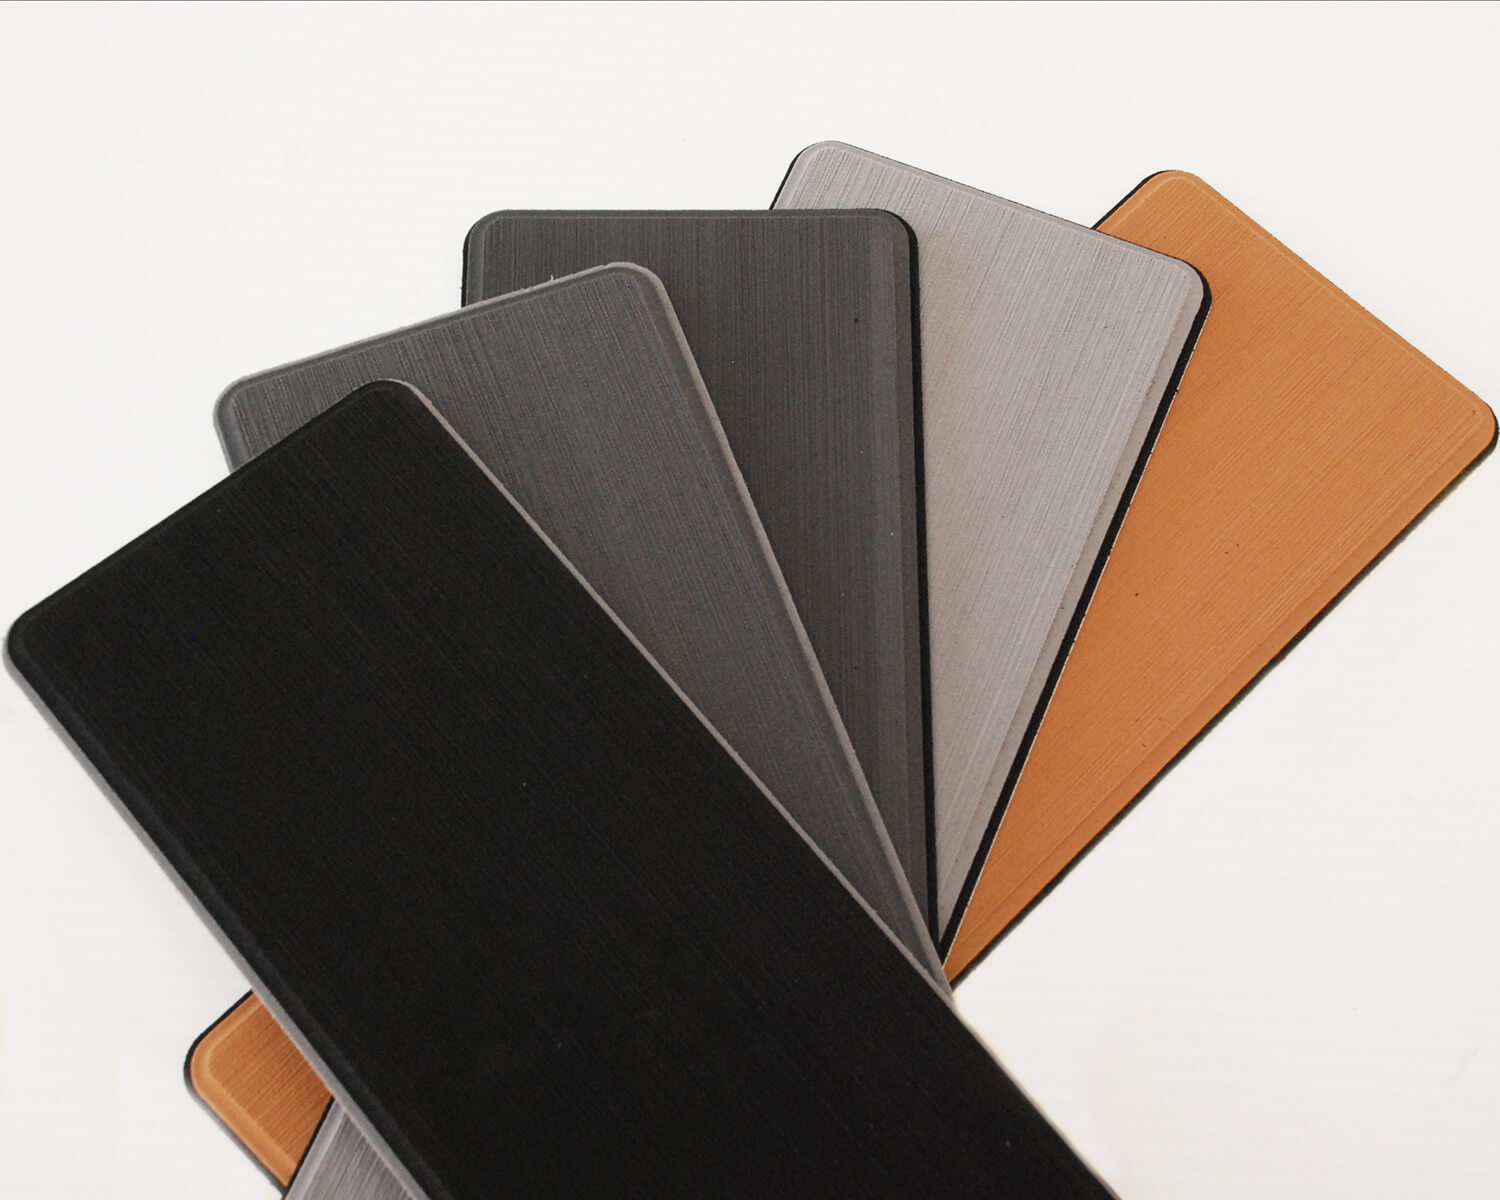 five different colours of EVA foam u-dek flooring